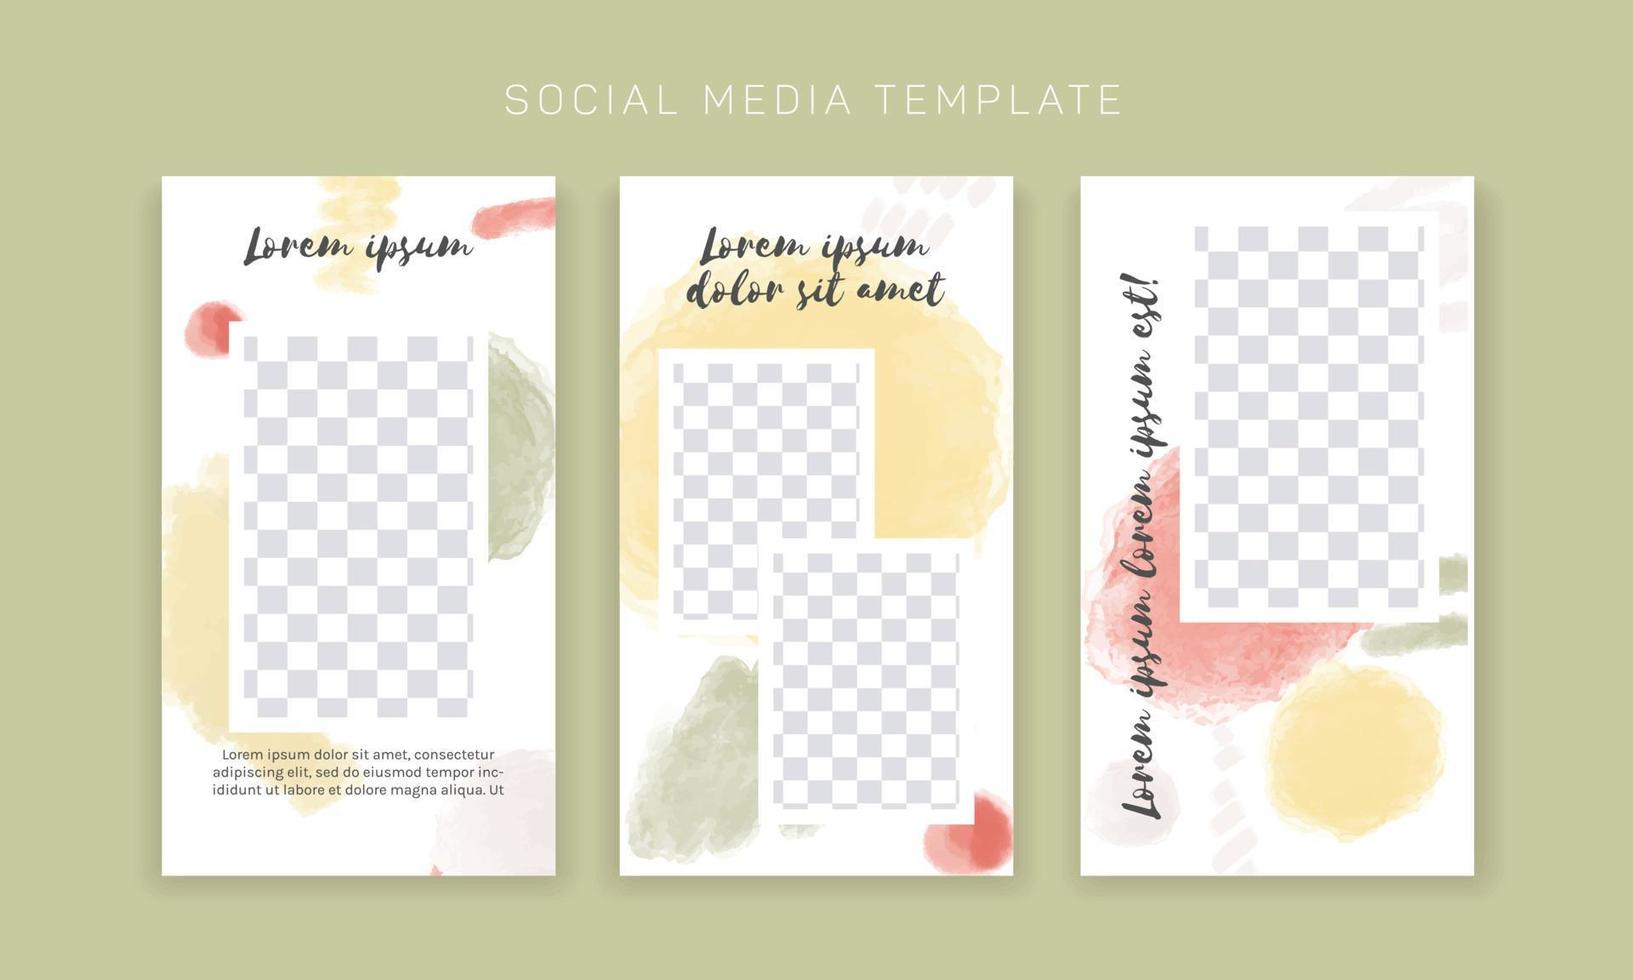 Vector template for social media and web design. Abstract watercolor brushed shapes, hand drawn